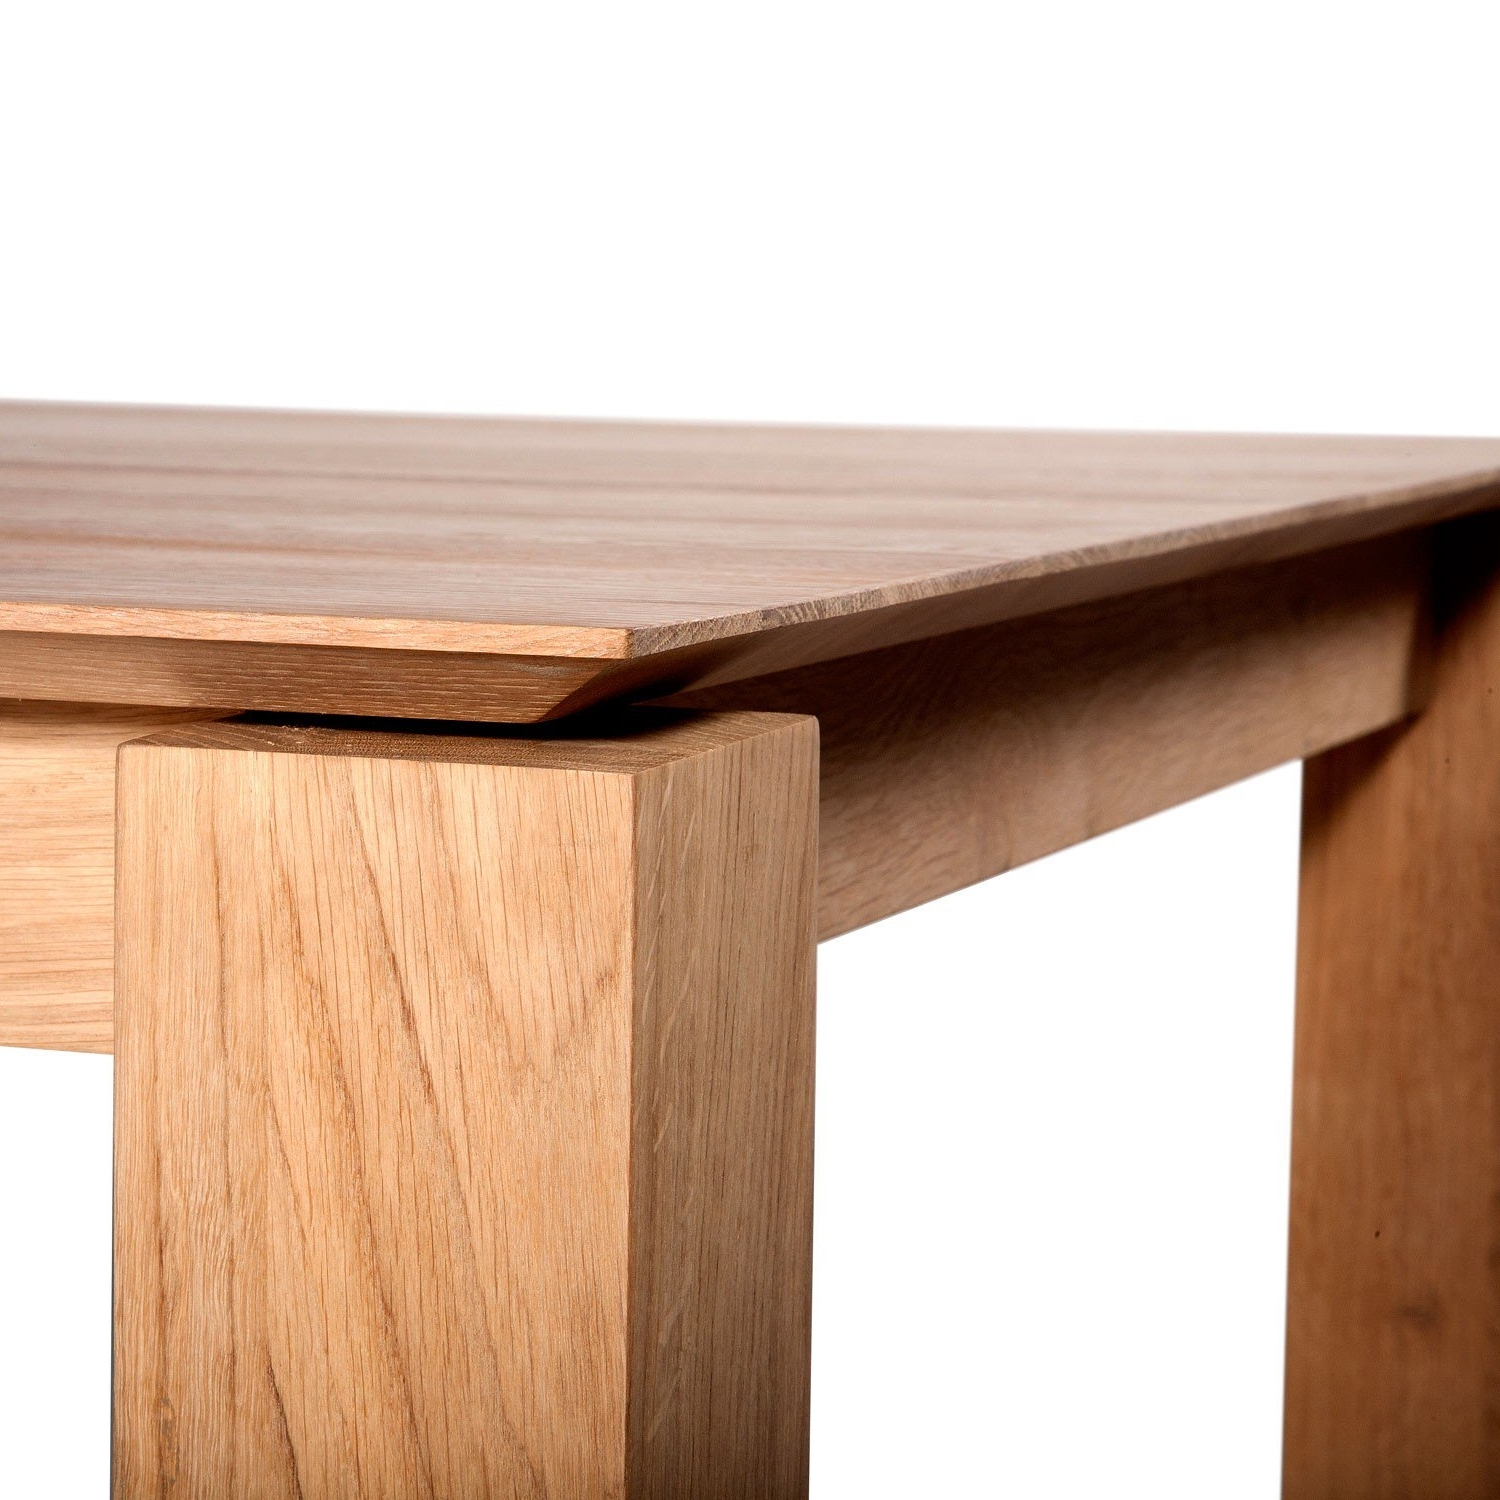 Extending Dining Tables With Regard To Recent Ethnicraft Oak Slice Extending Dining Tables (Gallery 8 of 25)